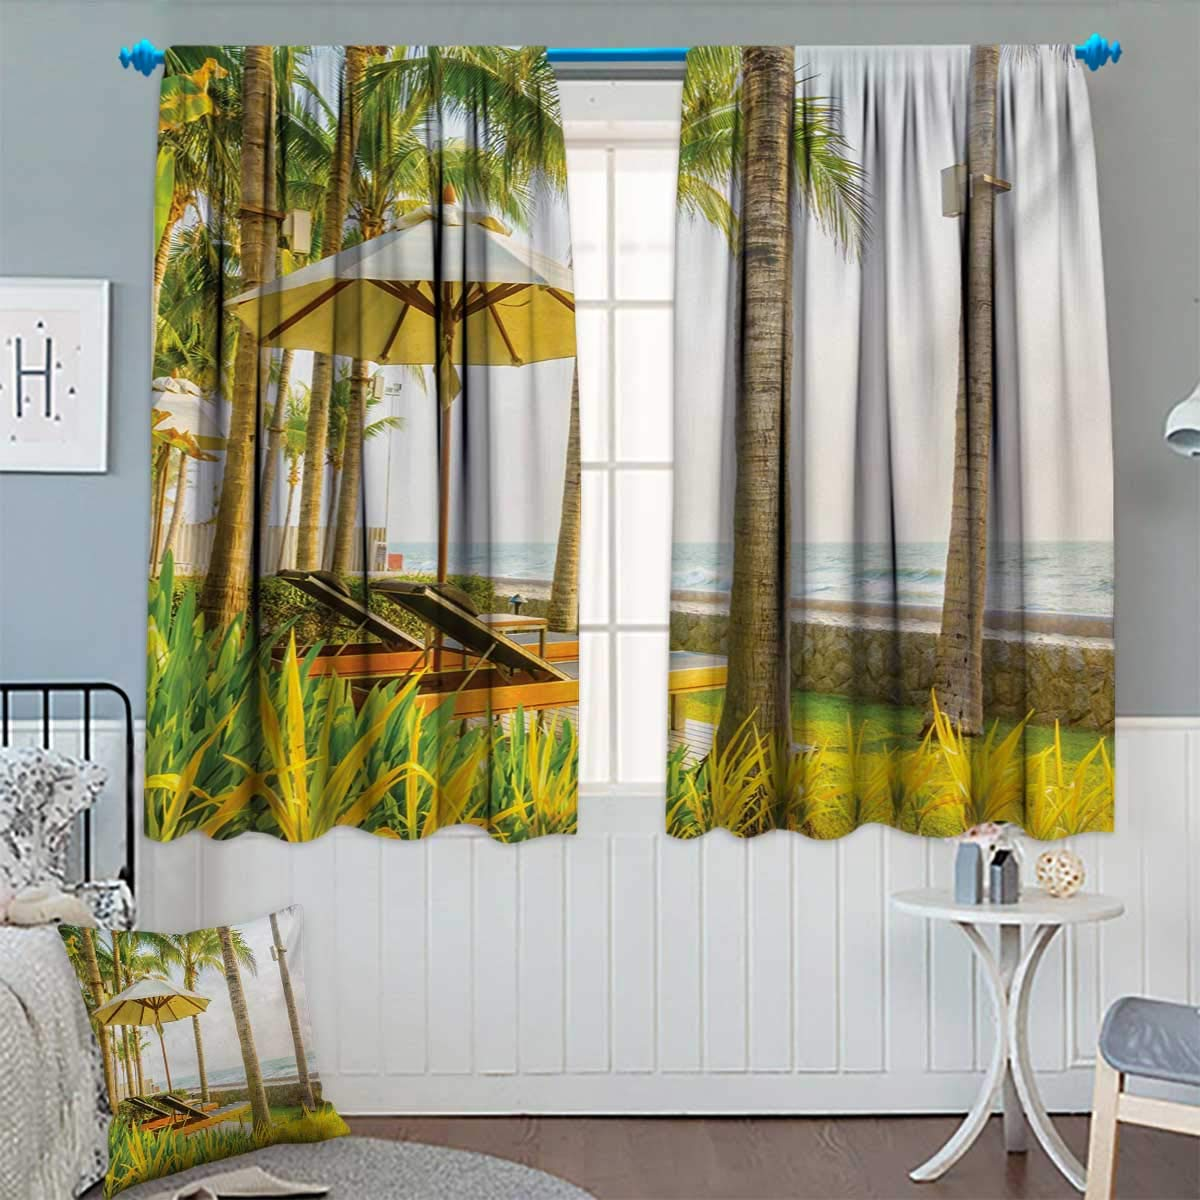 "Seaside Room Darkening Curtains Palm Trees Umbrella and Chairs Around Swimming Pool in Hotel Resort Image Decor Curtains by 72"" W x 84"" L Yellow Green and Tan"